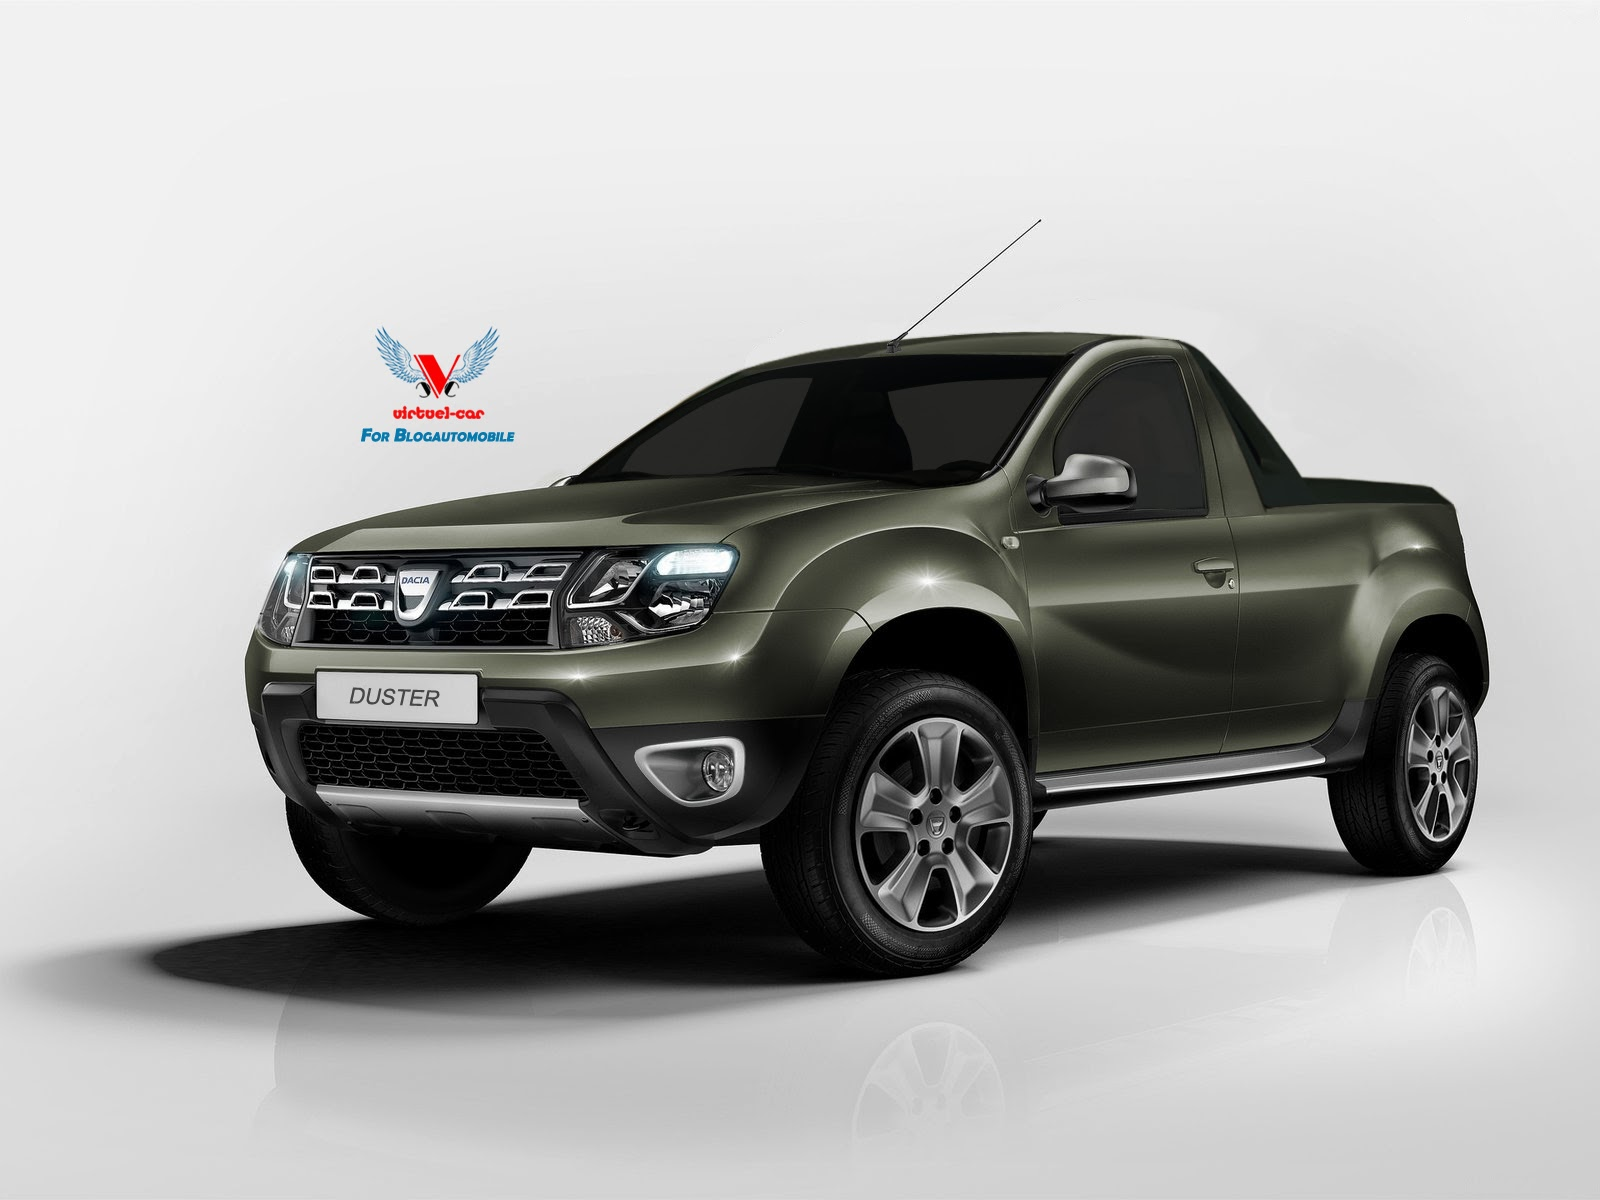 dacia duster facelift pickup truck yes please autoevolution. Black Bedroom Furniture Sets. Home Design Ideas